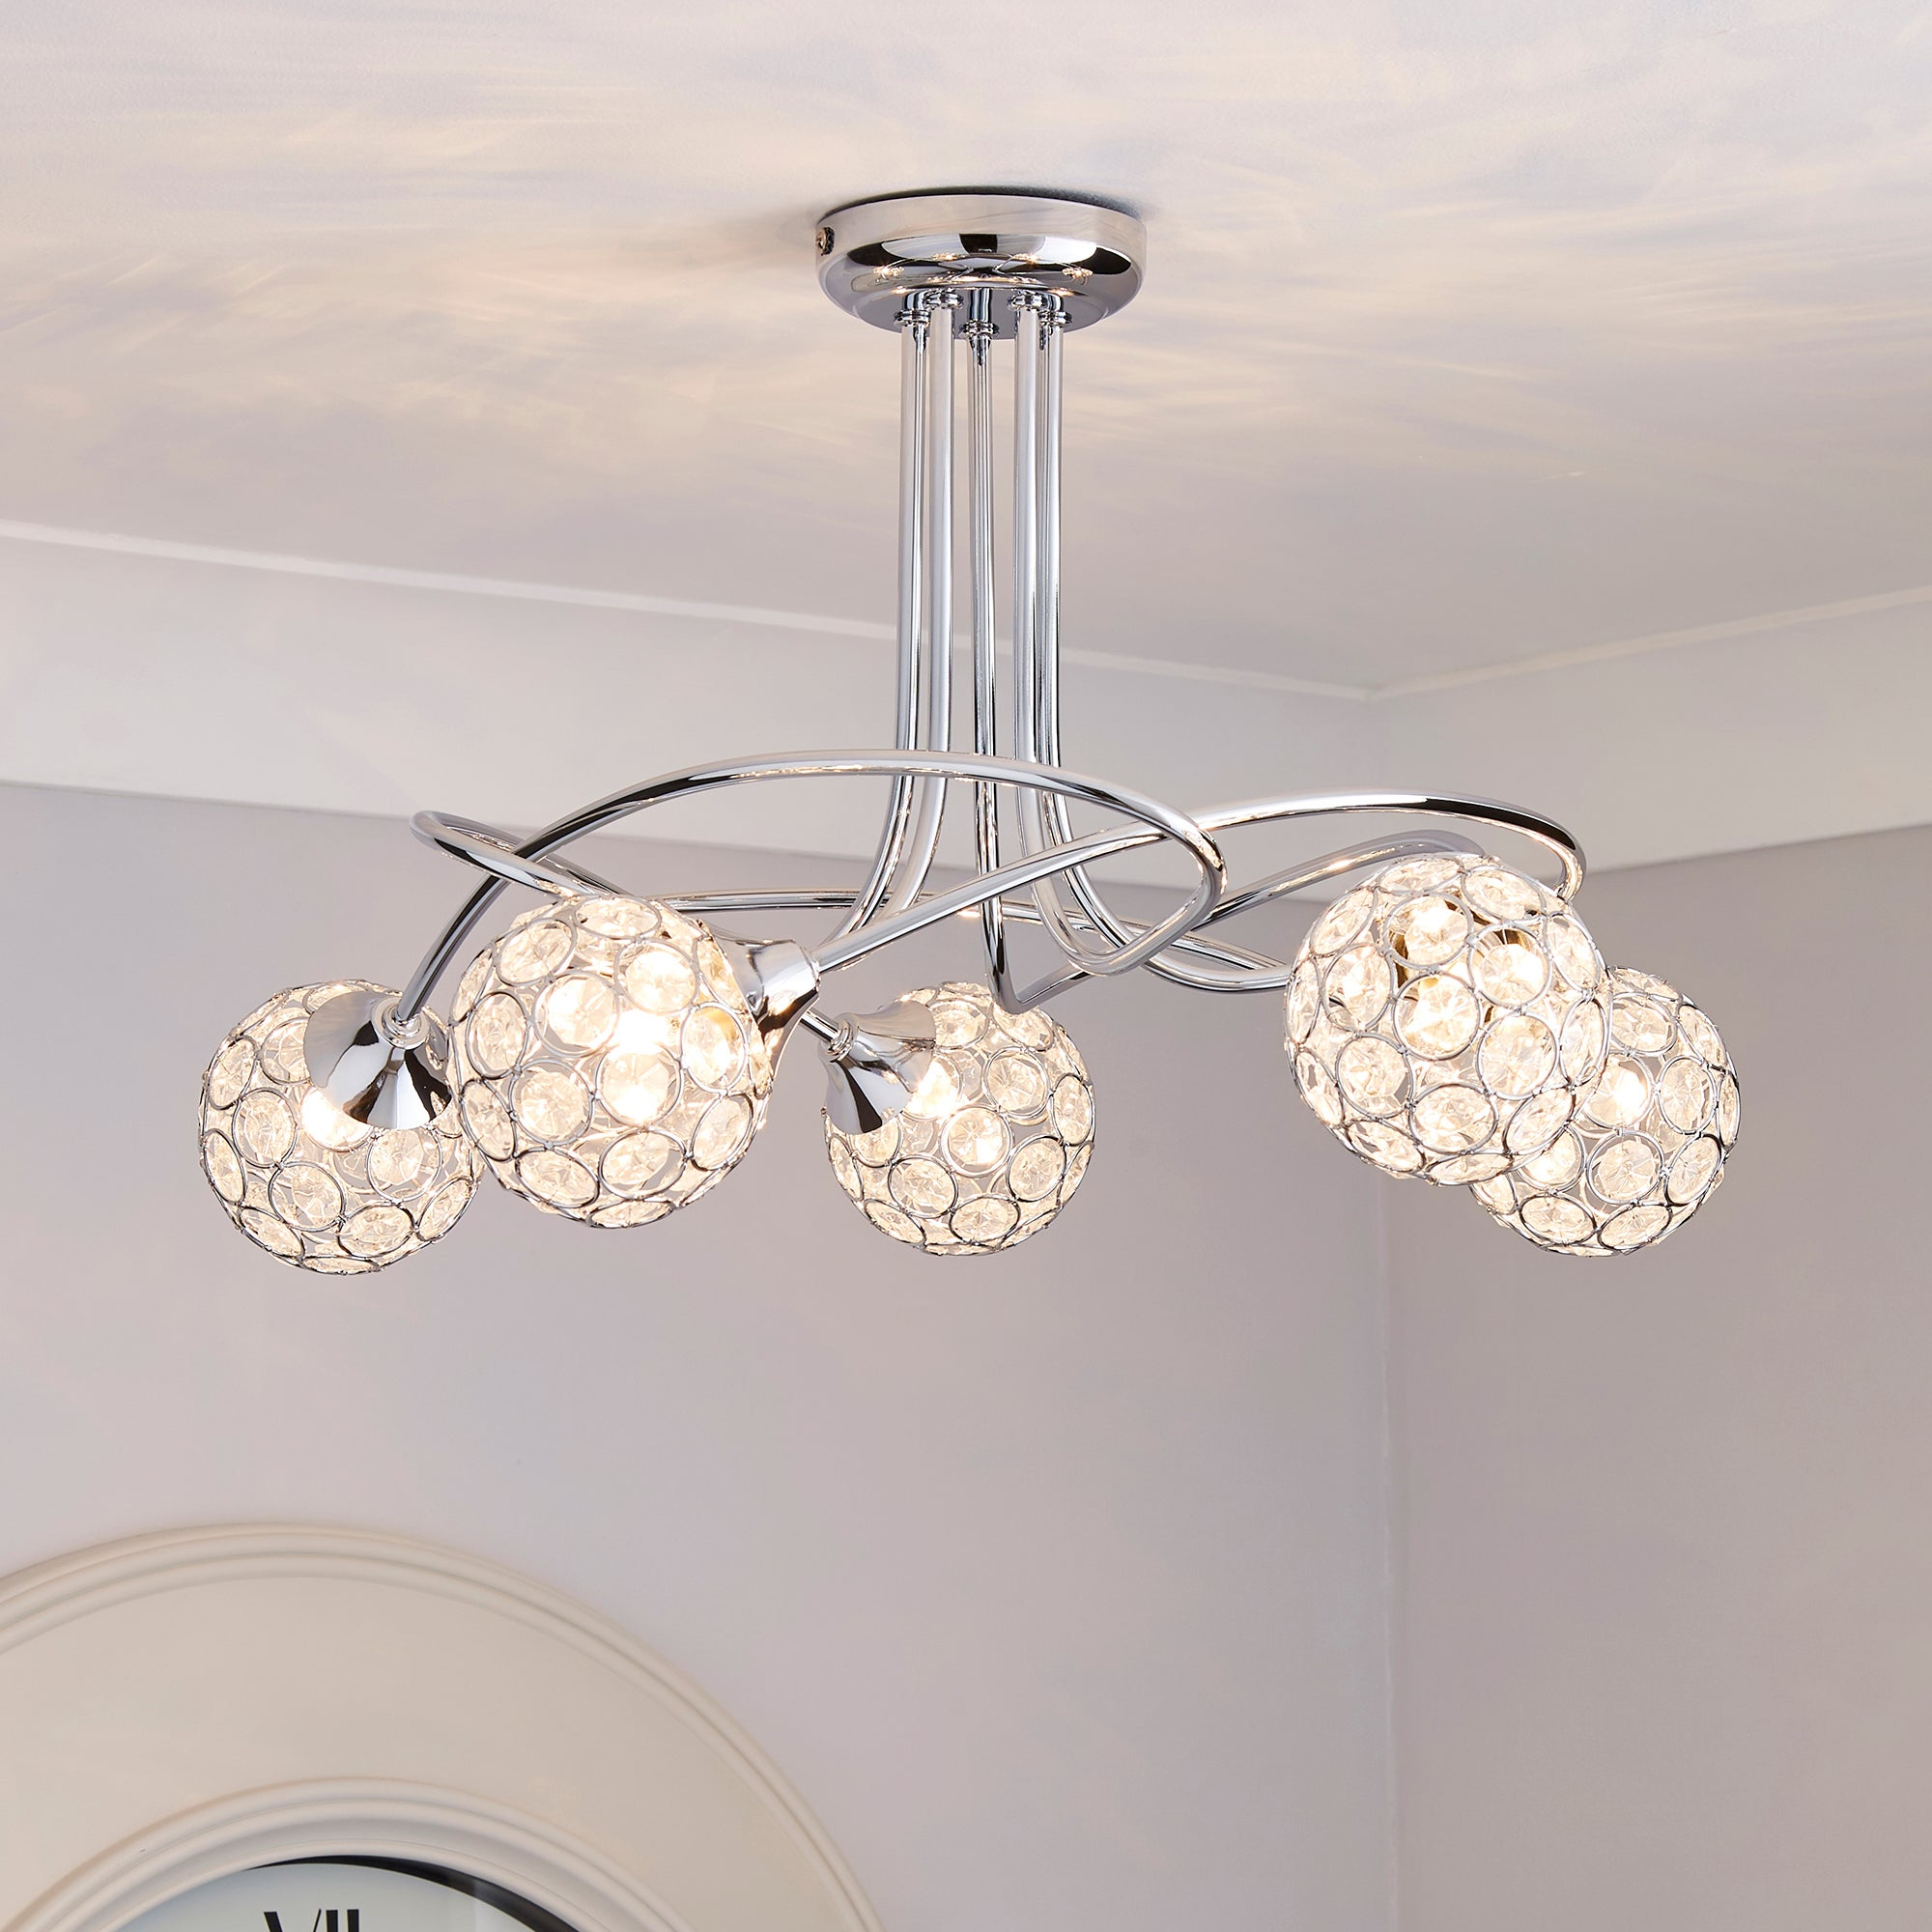 Sphere Five Light Chrome Ceiling Fitting